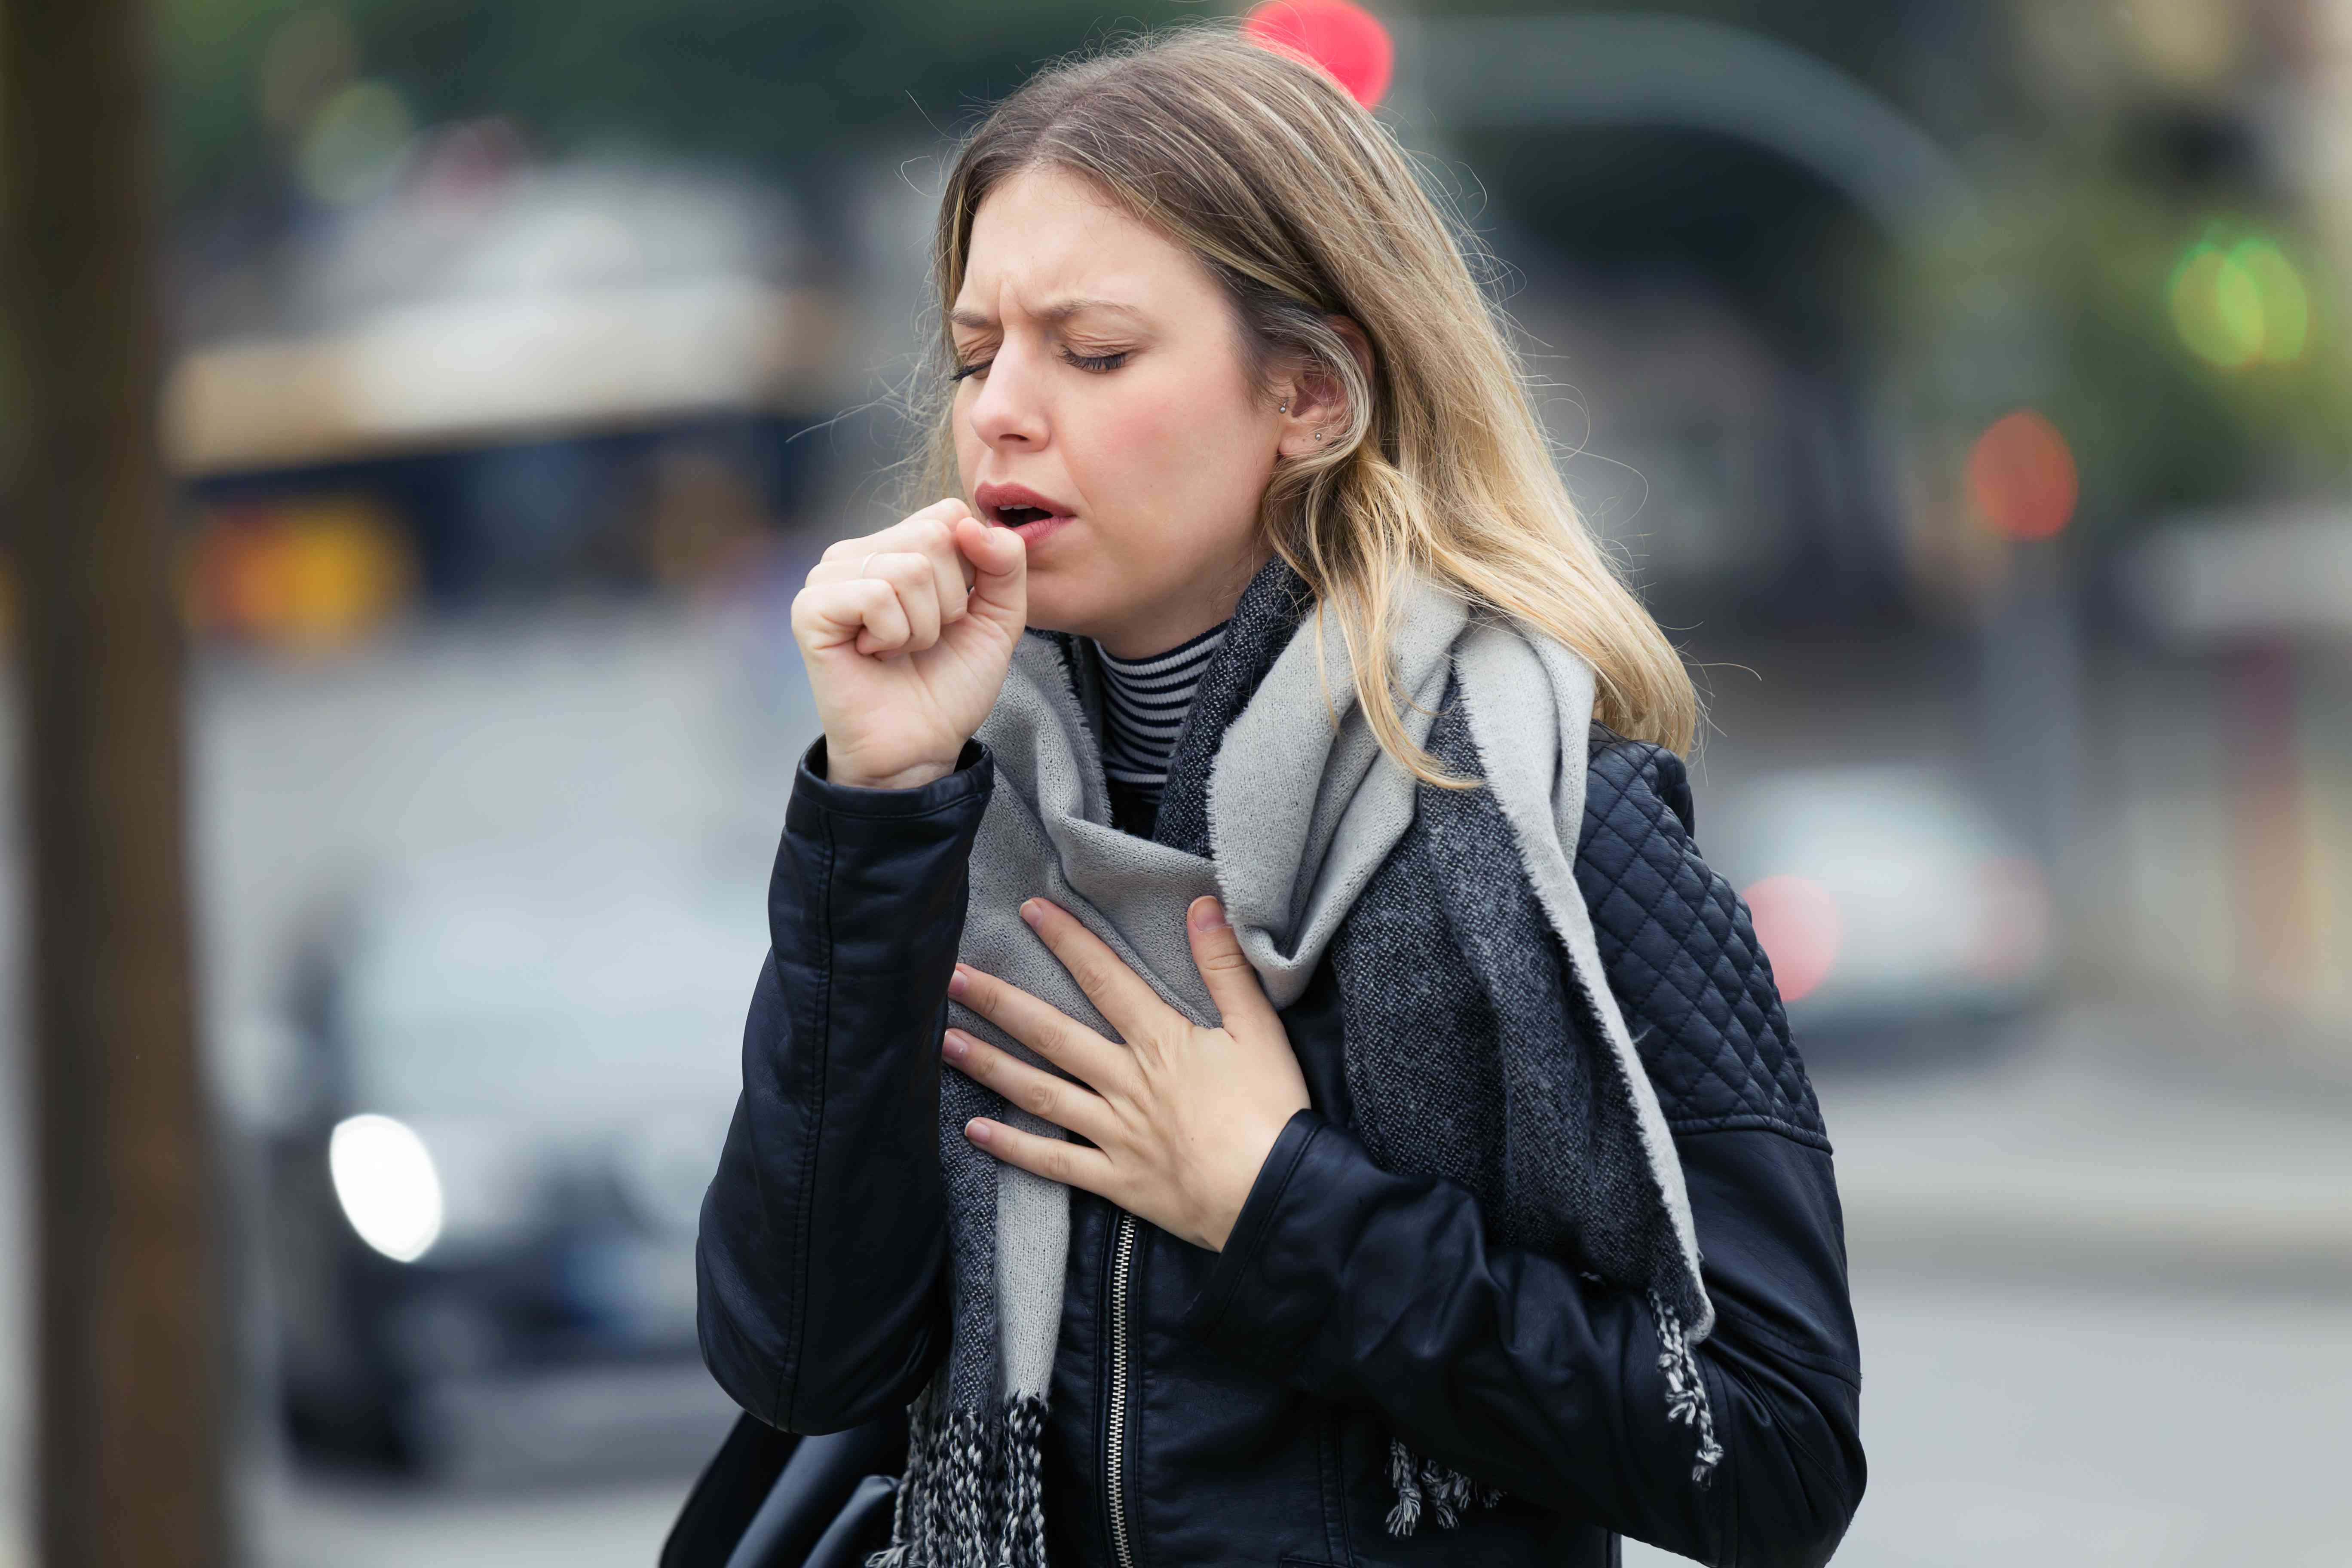 Illness young woman coughing in the street.